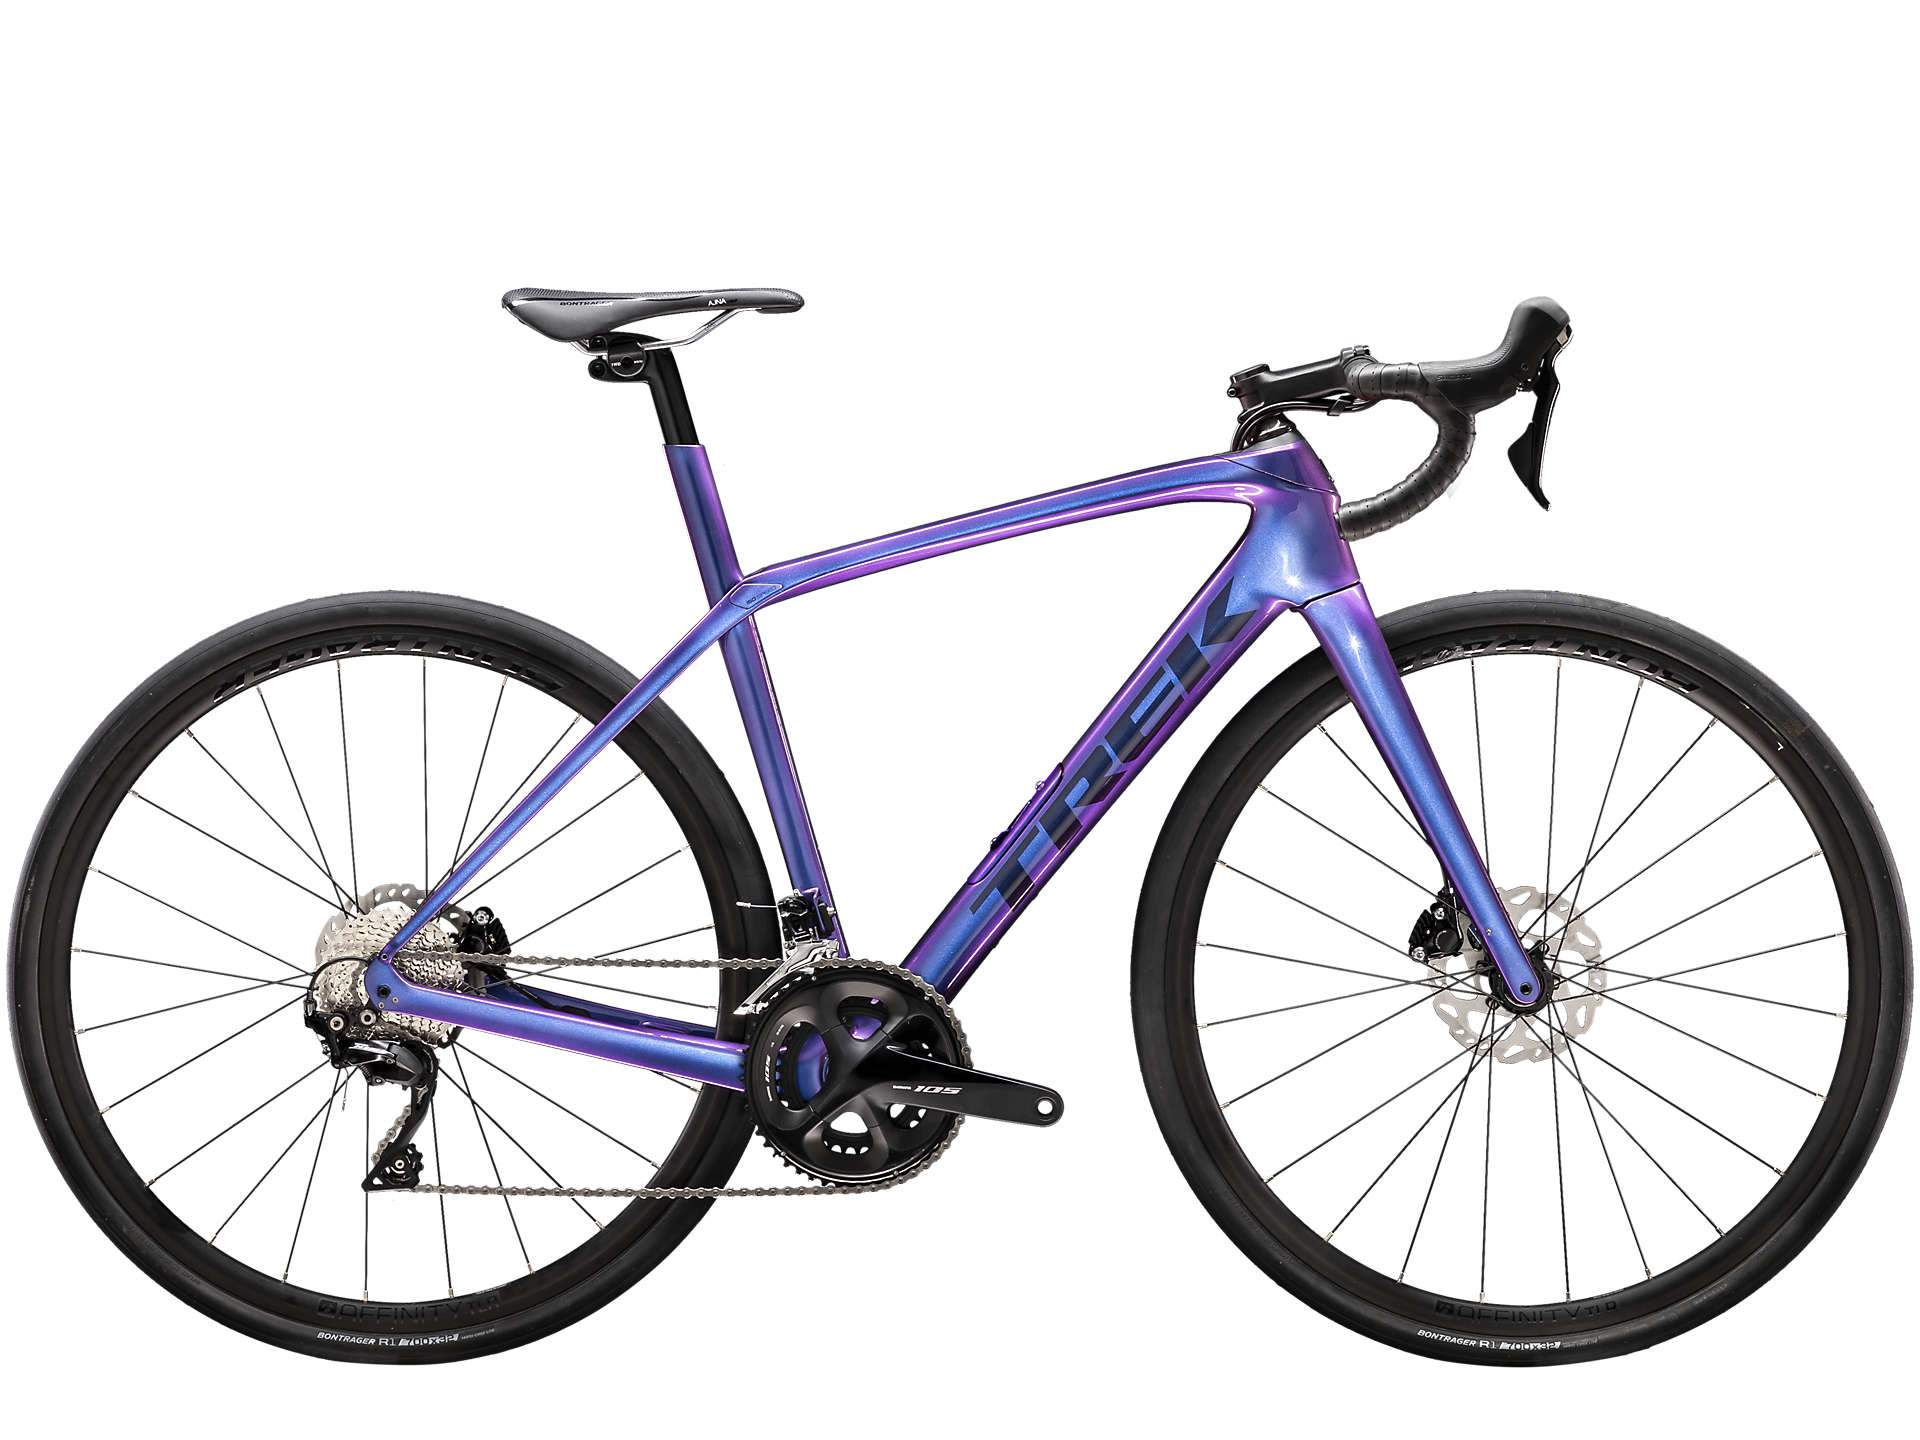 Trek Domane SL 5 Disc 2020 - Cycles Galleria Melbourne